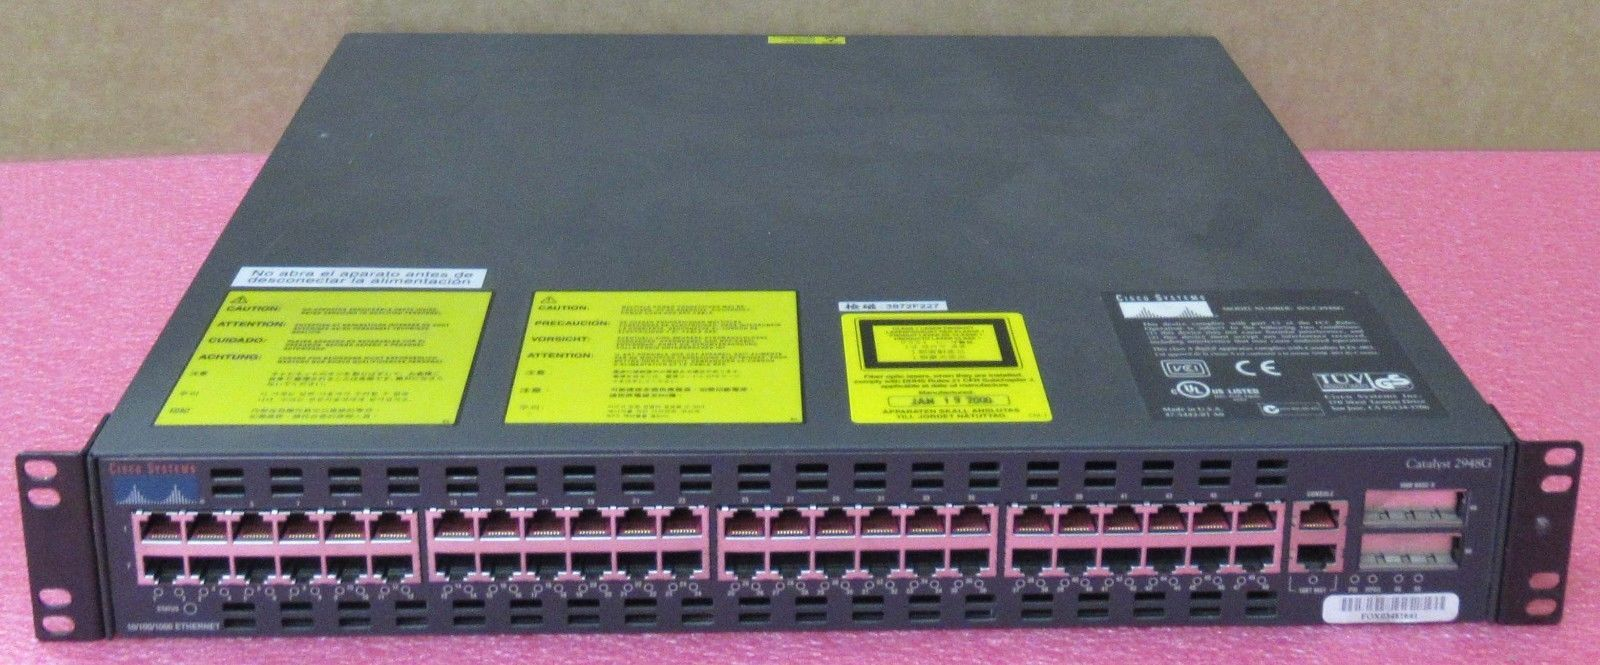 Cisco Catalyst 2948 WS-C2948G 48-Port + 2 GBIC Slot Fast Ethernet Switch +  Ears